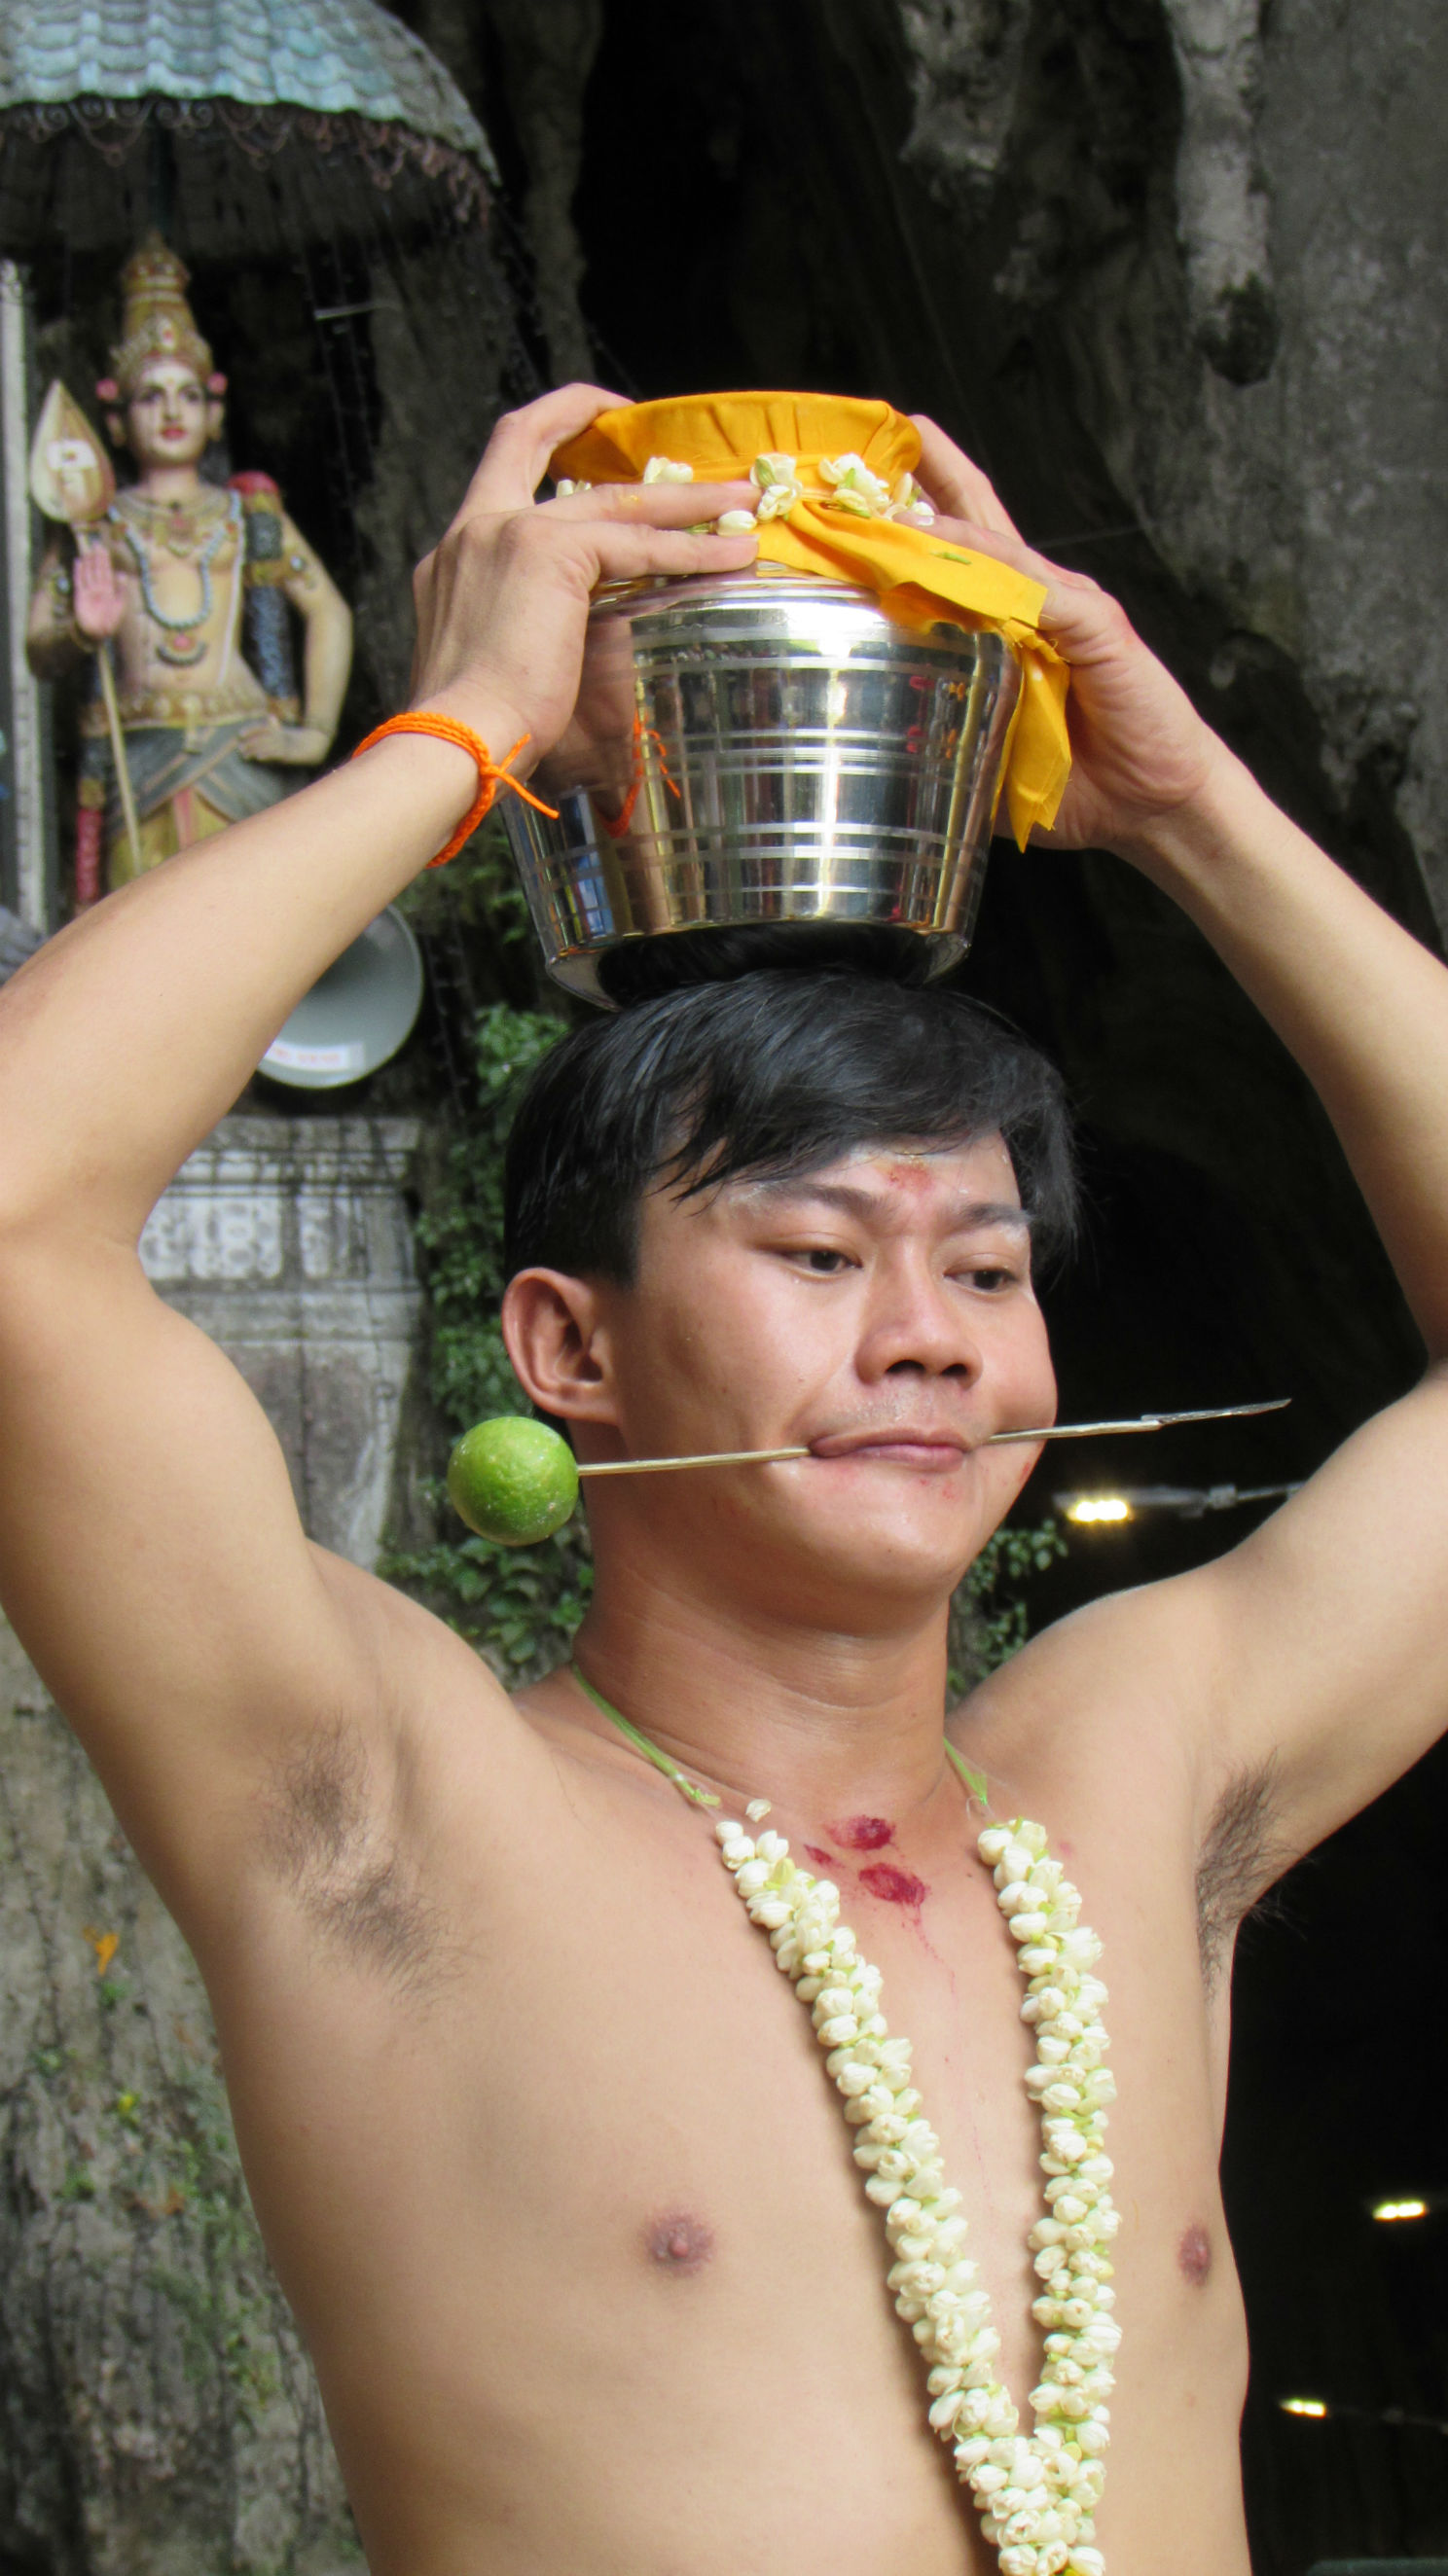 Devotee carrying milk can